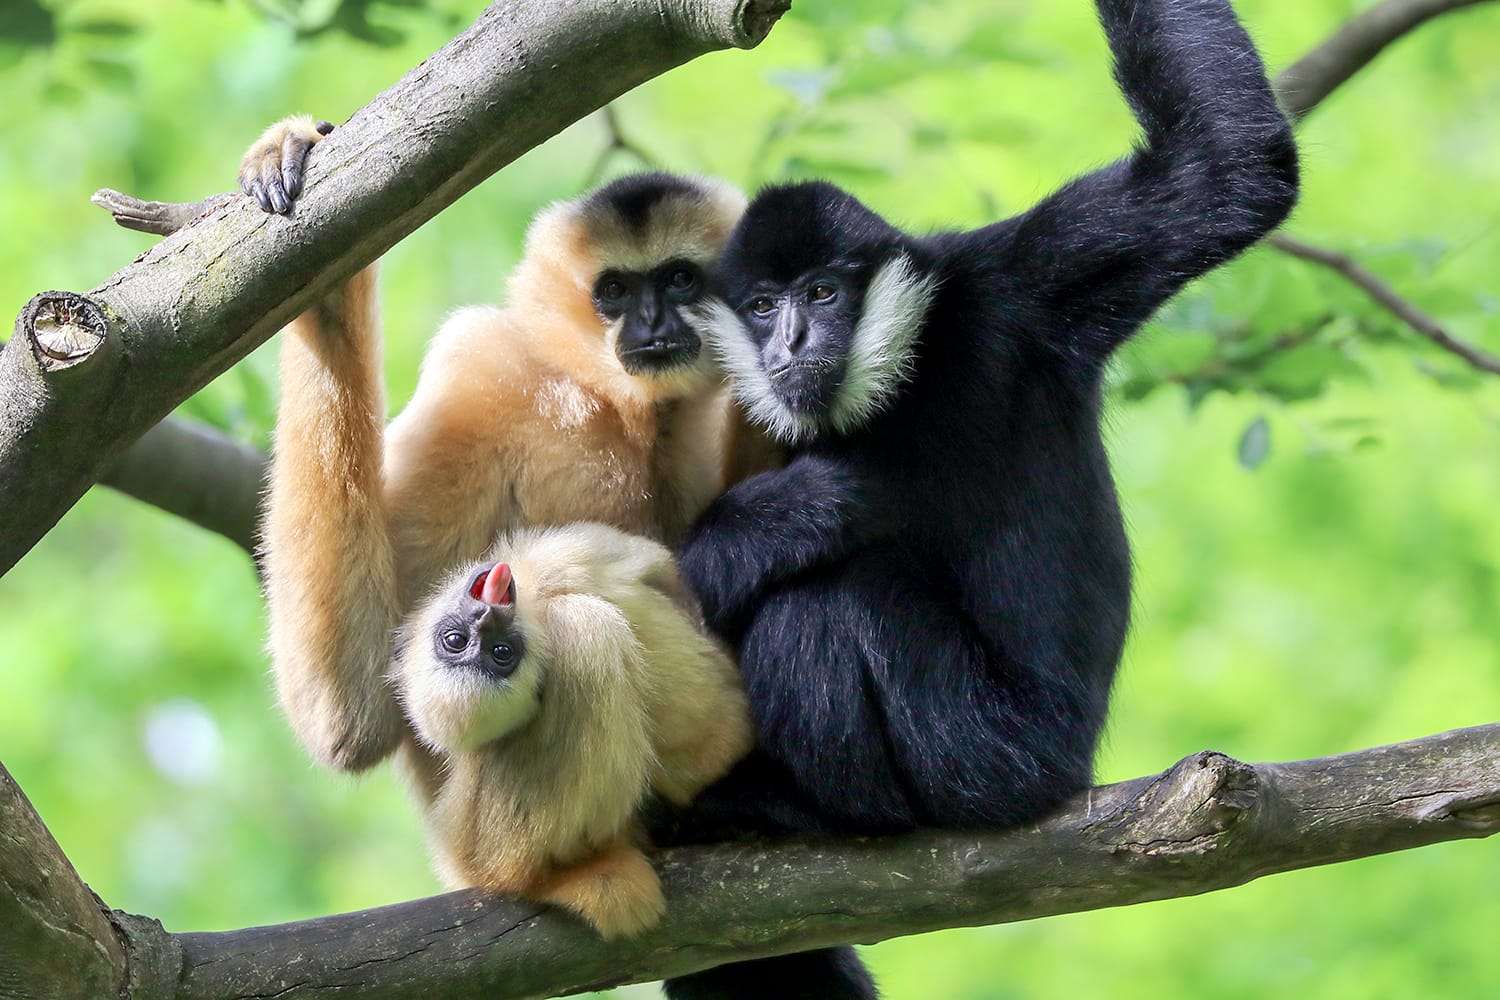 Yellow cheeked gibbon at Fort Worth Zoo in Texas, USA